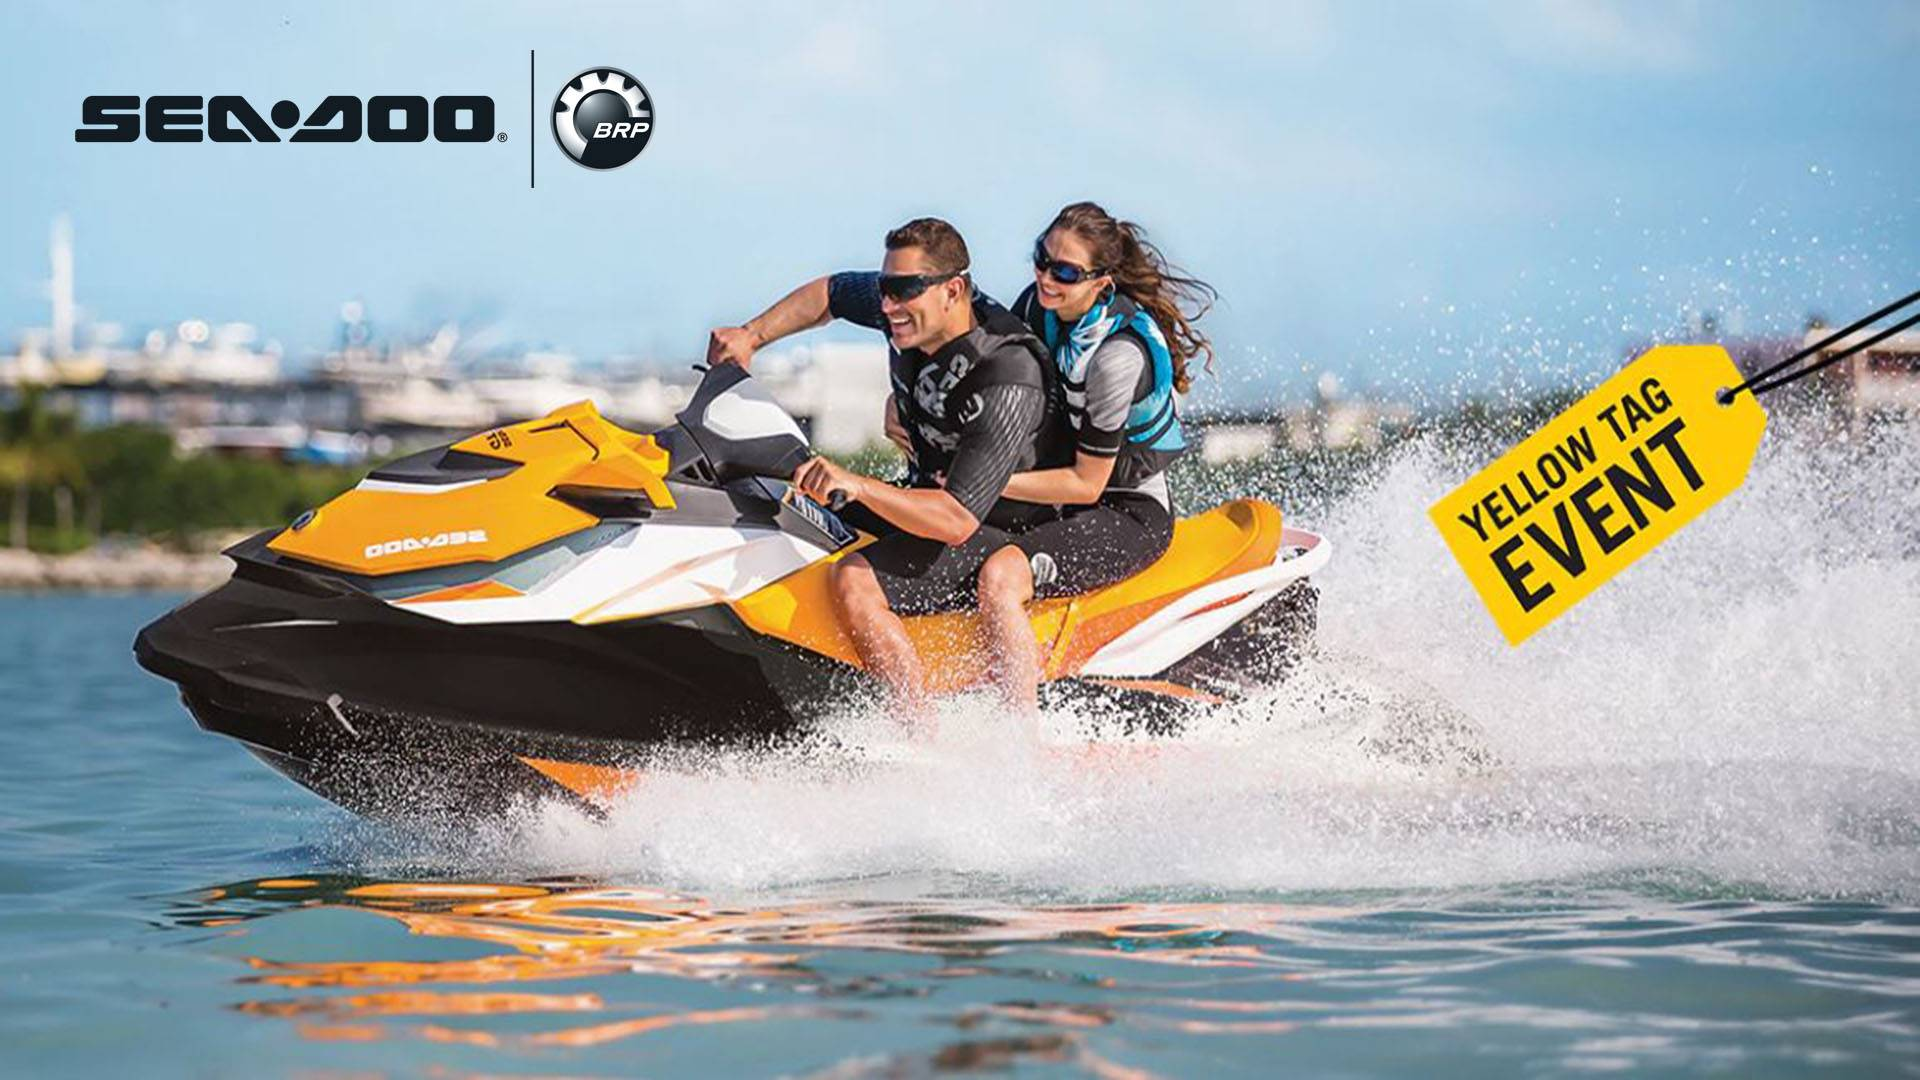 Sea-Doo - Yellow Tag Event - Rebate and Financing